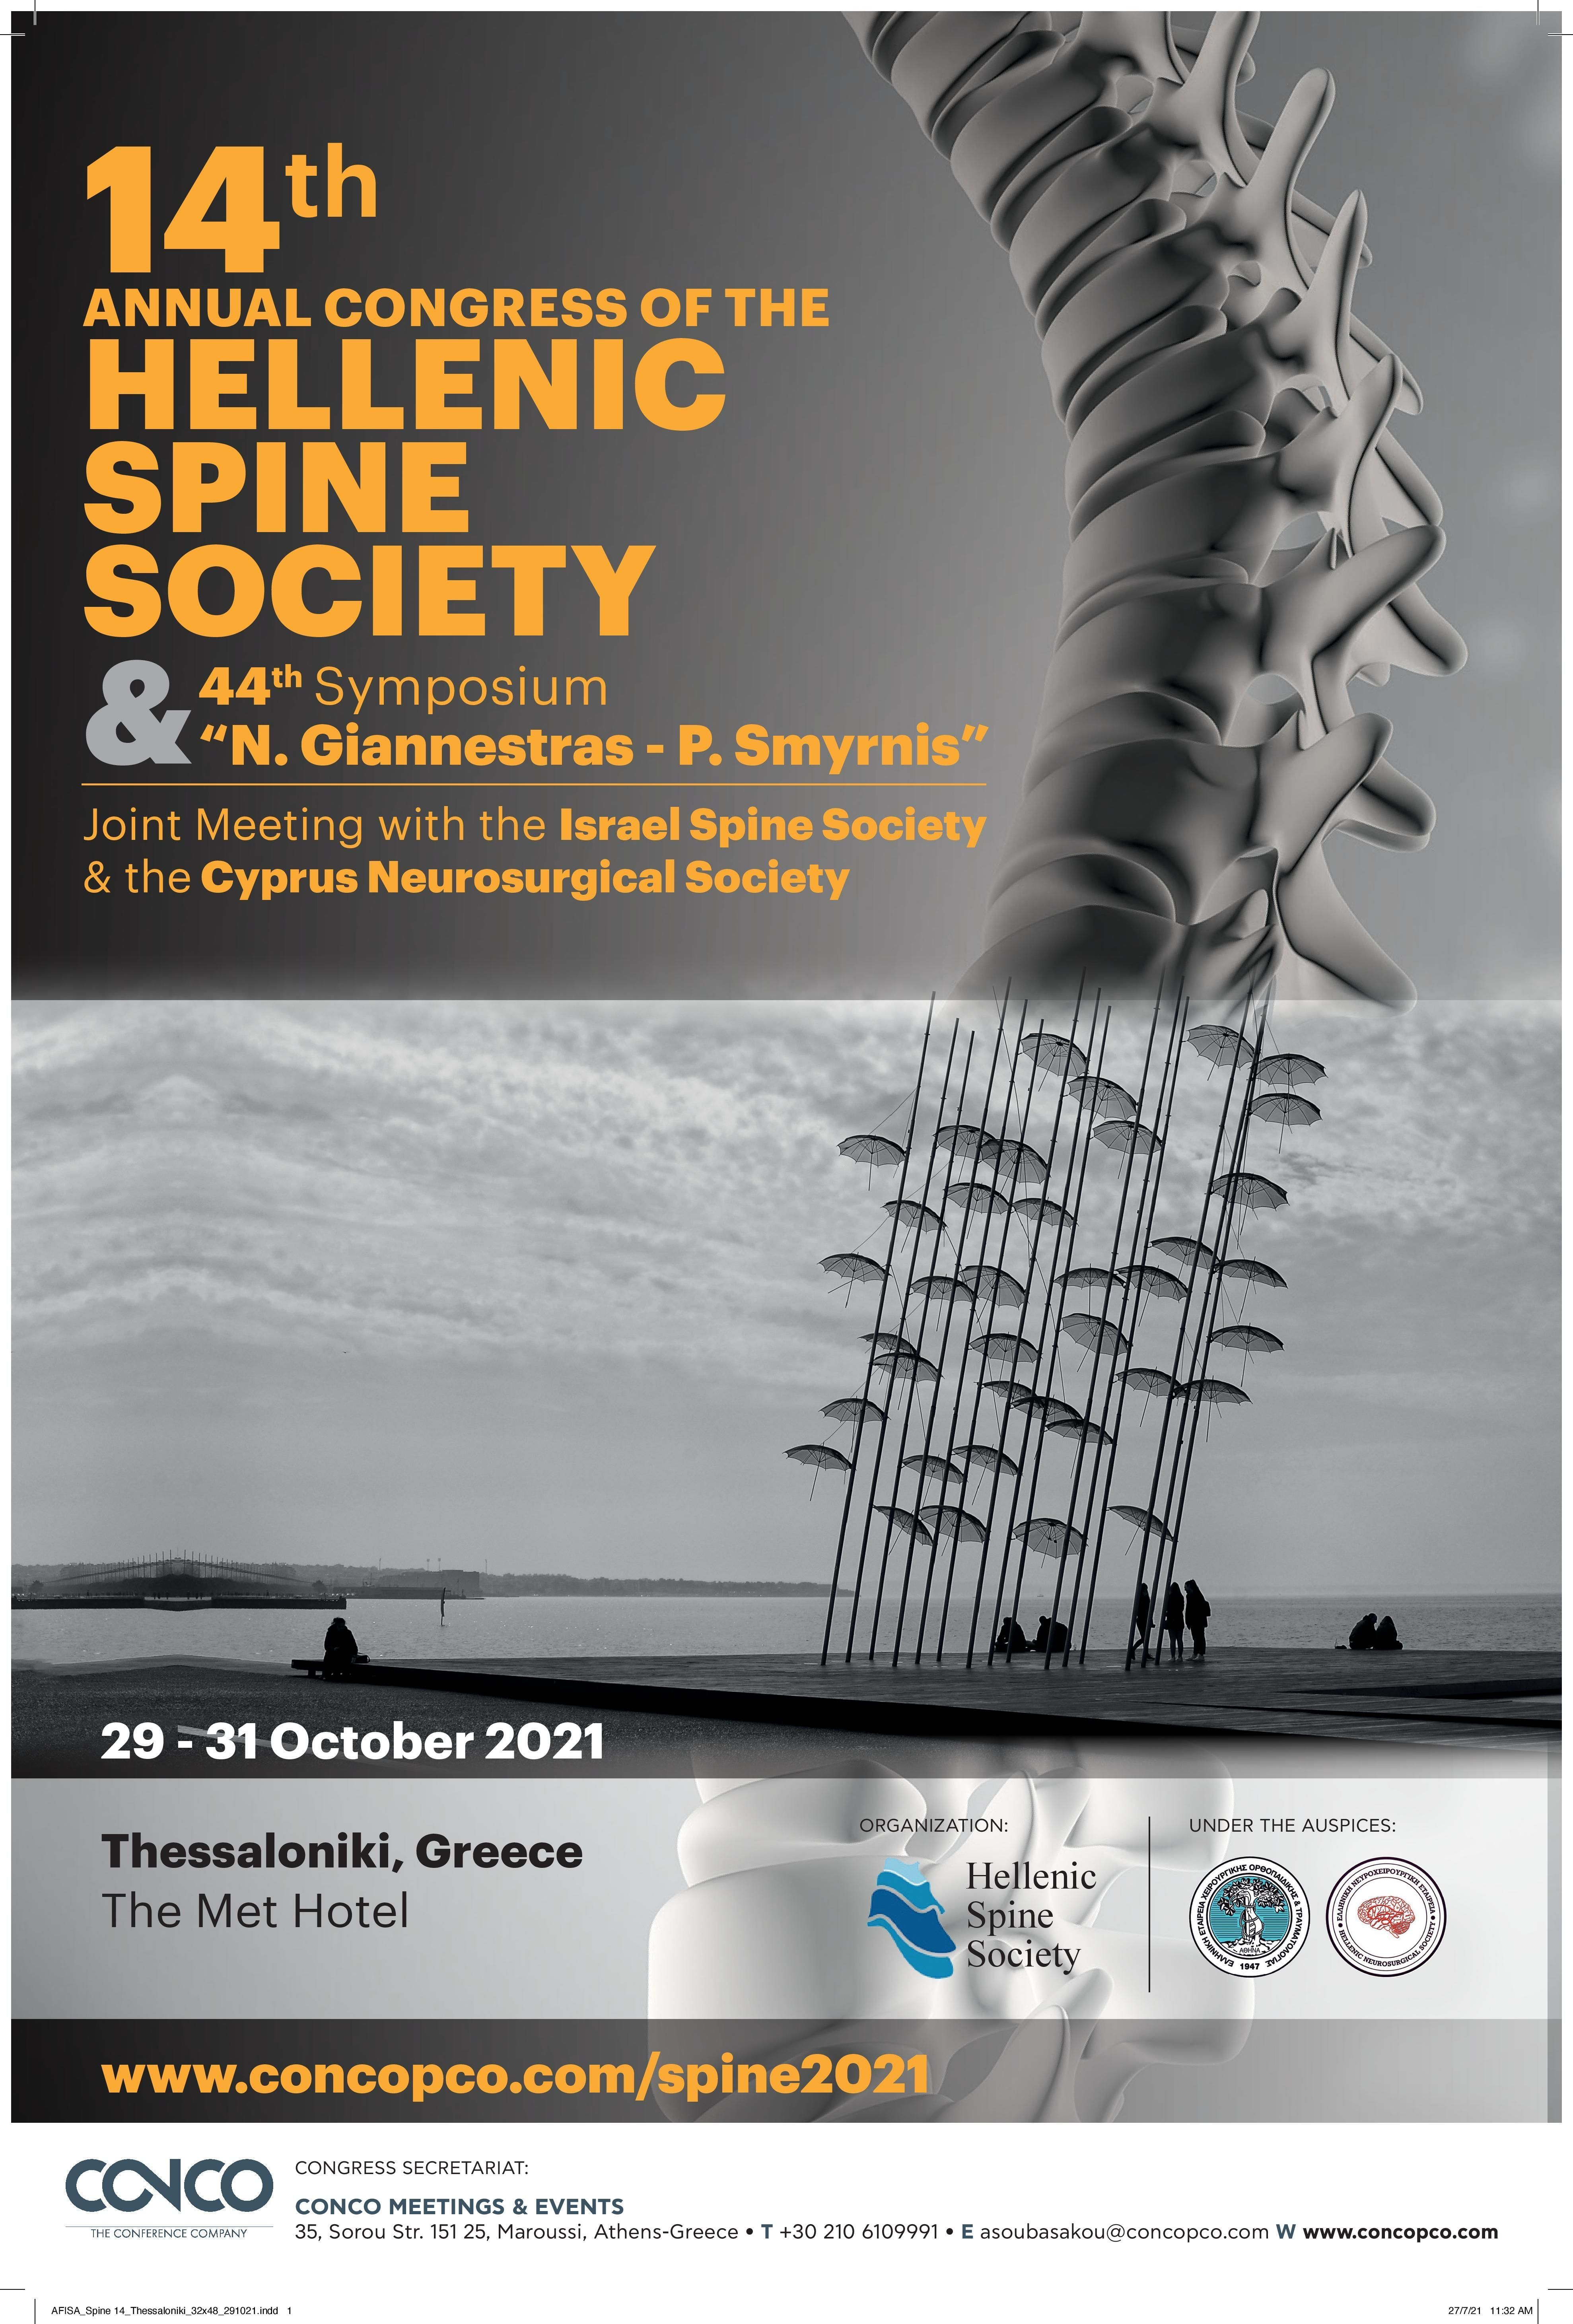 """14th ANNUAL CONGRESS OF THE HELLENIC SPINE SOCIETY AND 44th SYMPOSIUM """"N. GIANNESTRAS - P. SMYRNIS"""""""